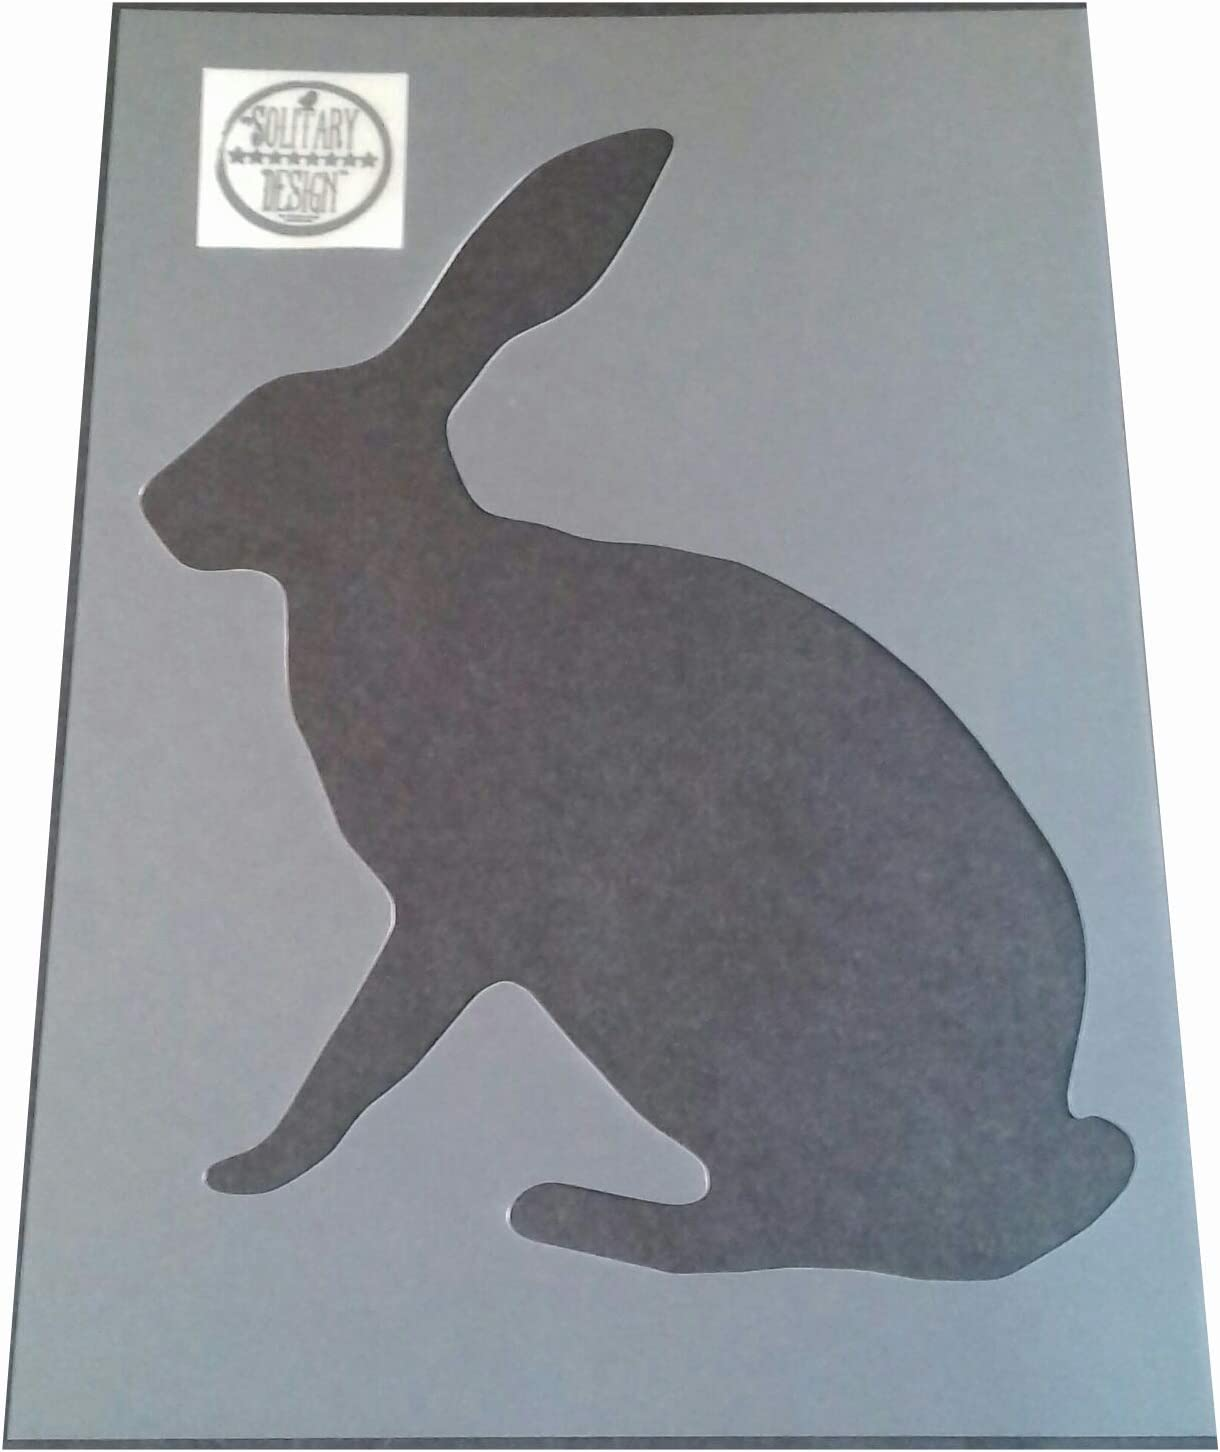 Solitarydesign Shabby Chic Stencil Hare silhouette Rabbit bunny Rustic Mylar Vintage A4 297x210mm wall Furniture